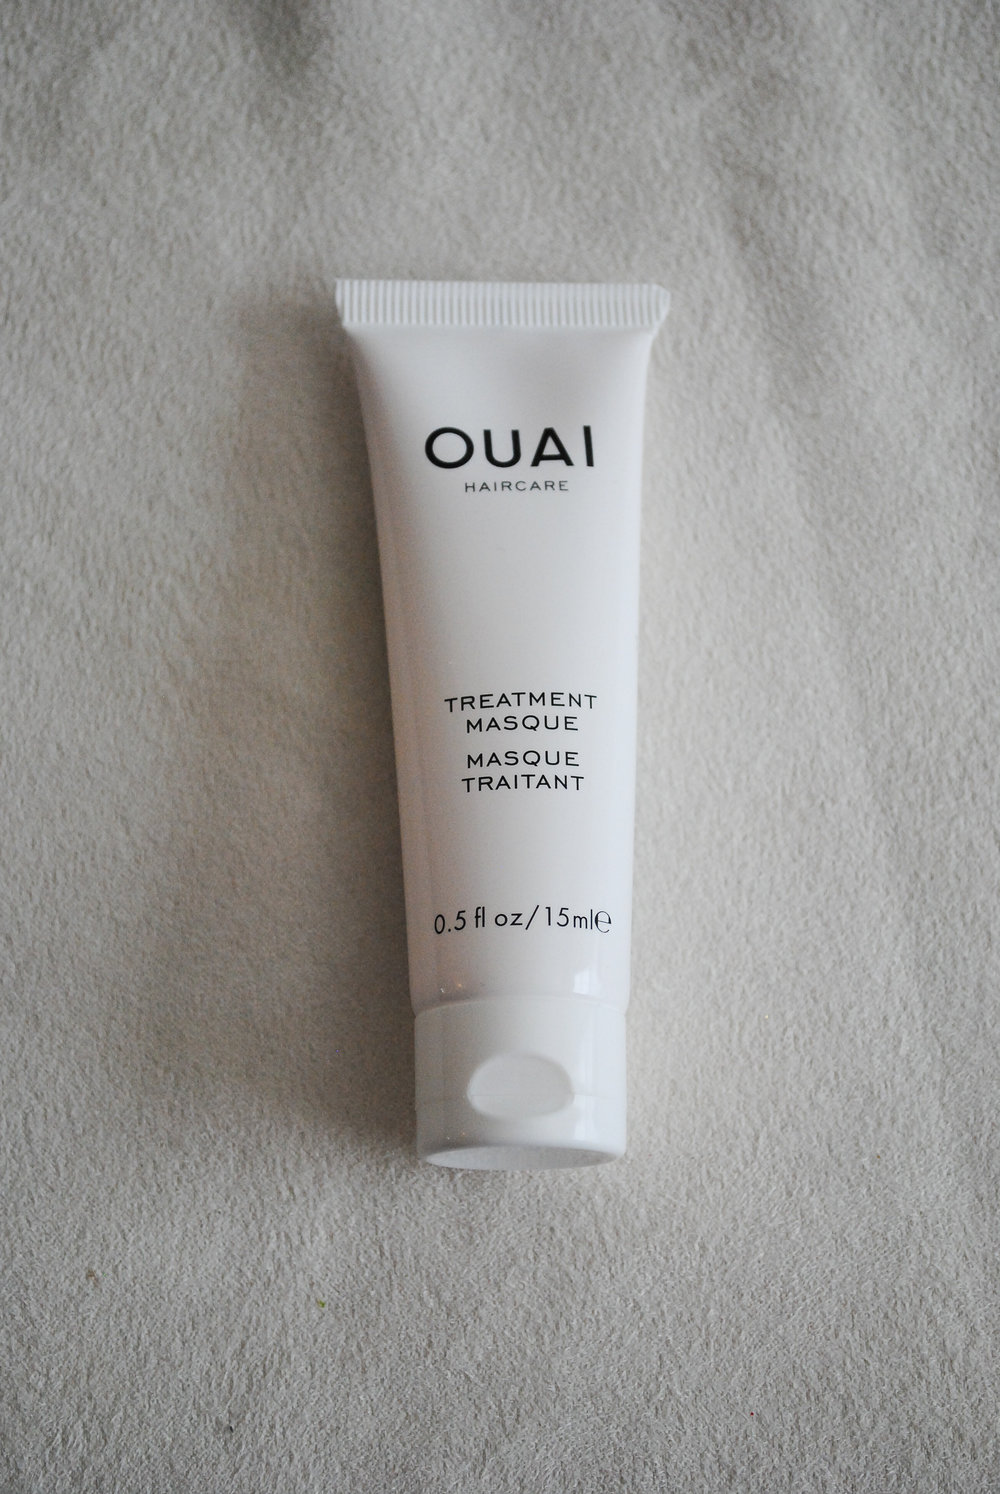 The QUAI Treatment Masque  What it claims to do: This restorative mask helps care for damaged hair and leaves strands feeling smooth and touchably soft.  This hair mask does leave your hair smooth and soft for sure. Super easy to use too and perfect for after workout showers. Just apply the mask before you shower leave in 5-10 minutes and rinse. You will notice your hair is left silky smooth.